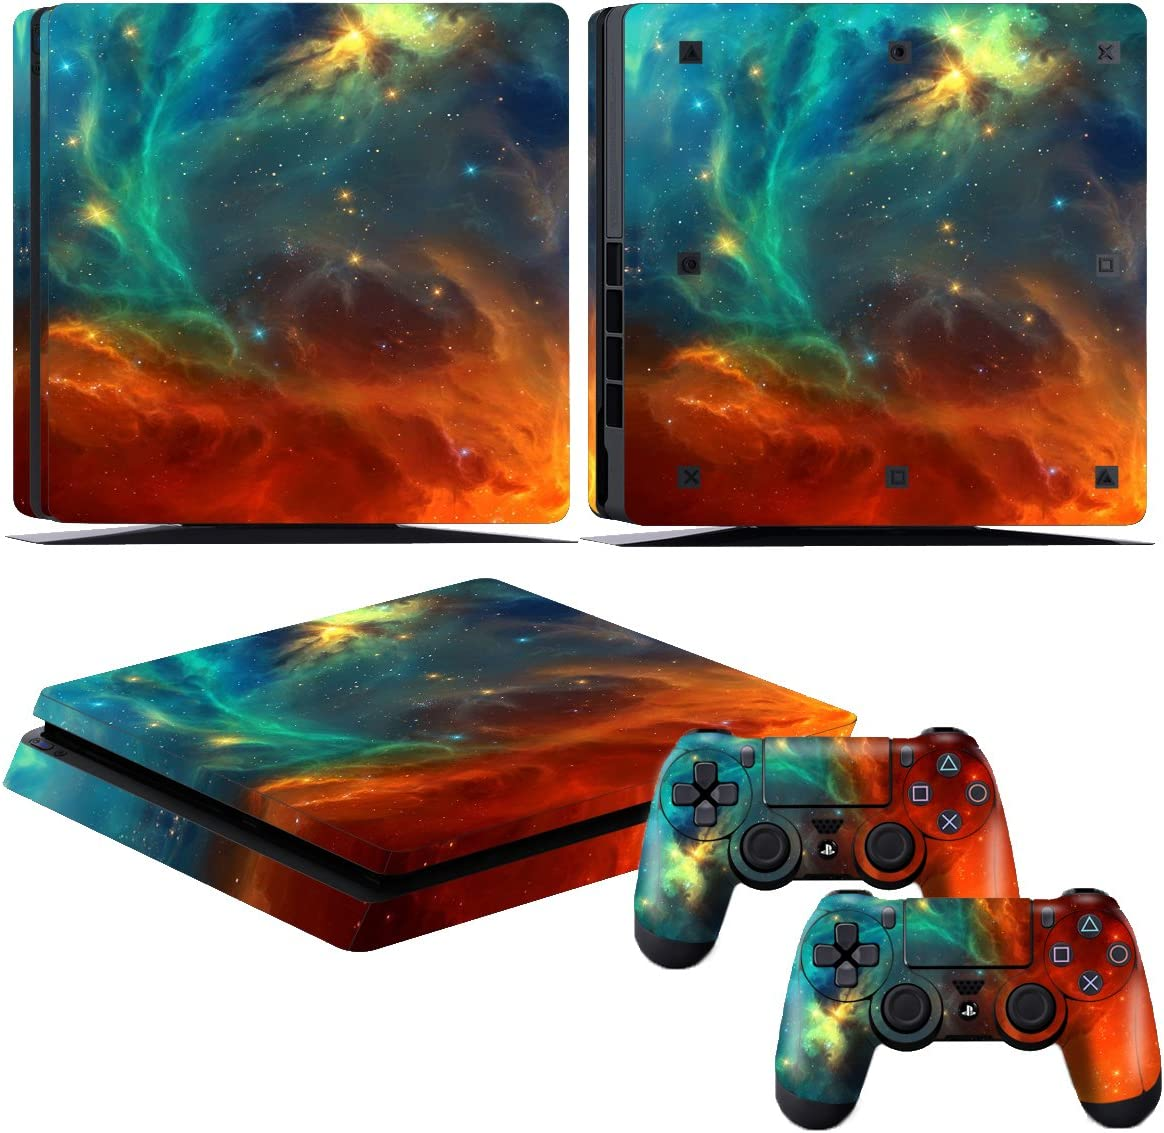 Video Games & Consoles Faceplates, Decals & Stickers Nba 2k18 1 Sticker Console Decal Playstation 4 Controller Vinyl Ps4 Skin